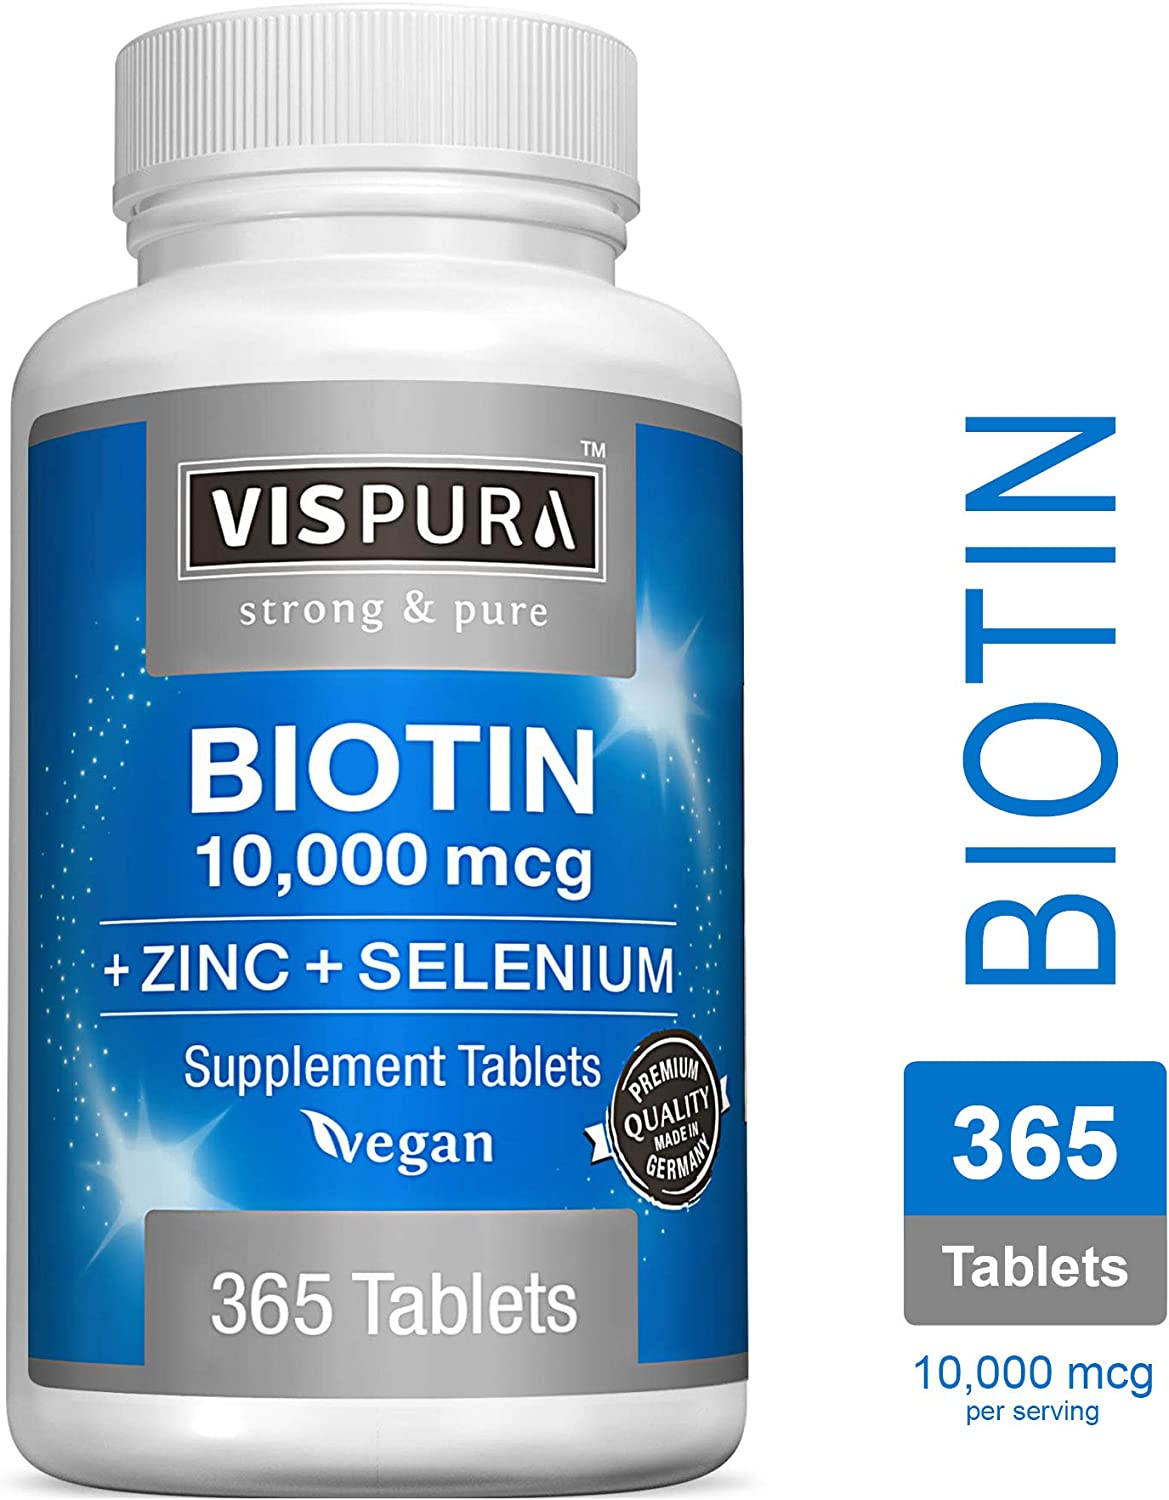 Biotin 10000 mcg Vitamin + Zinc + Selenium, Best Supplement for Hair Growth, Glowing Skin, Strong Nails*, 365 Tablets